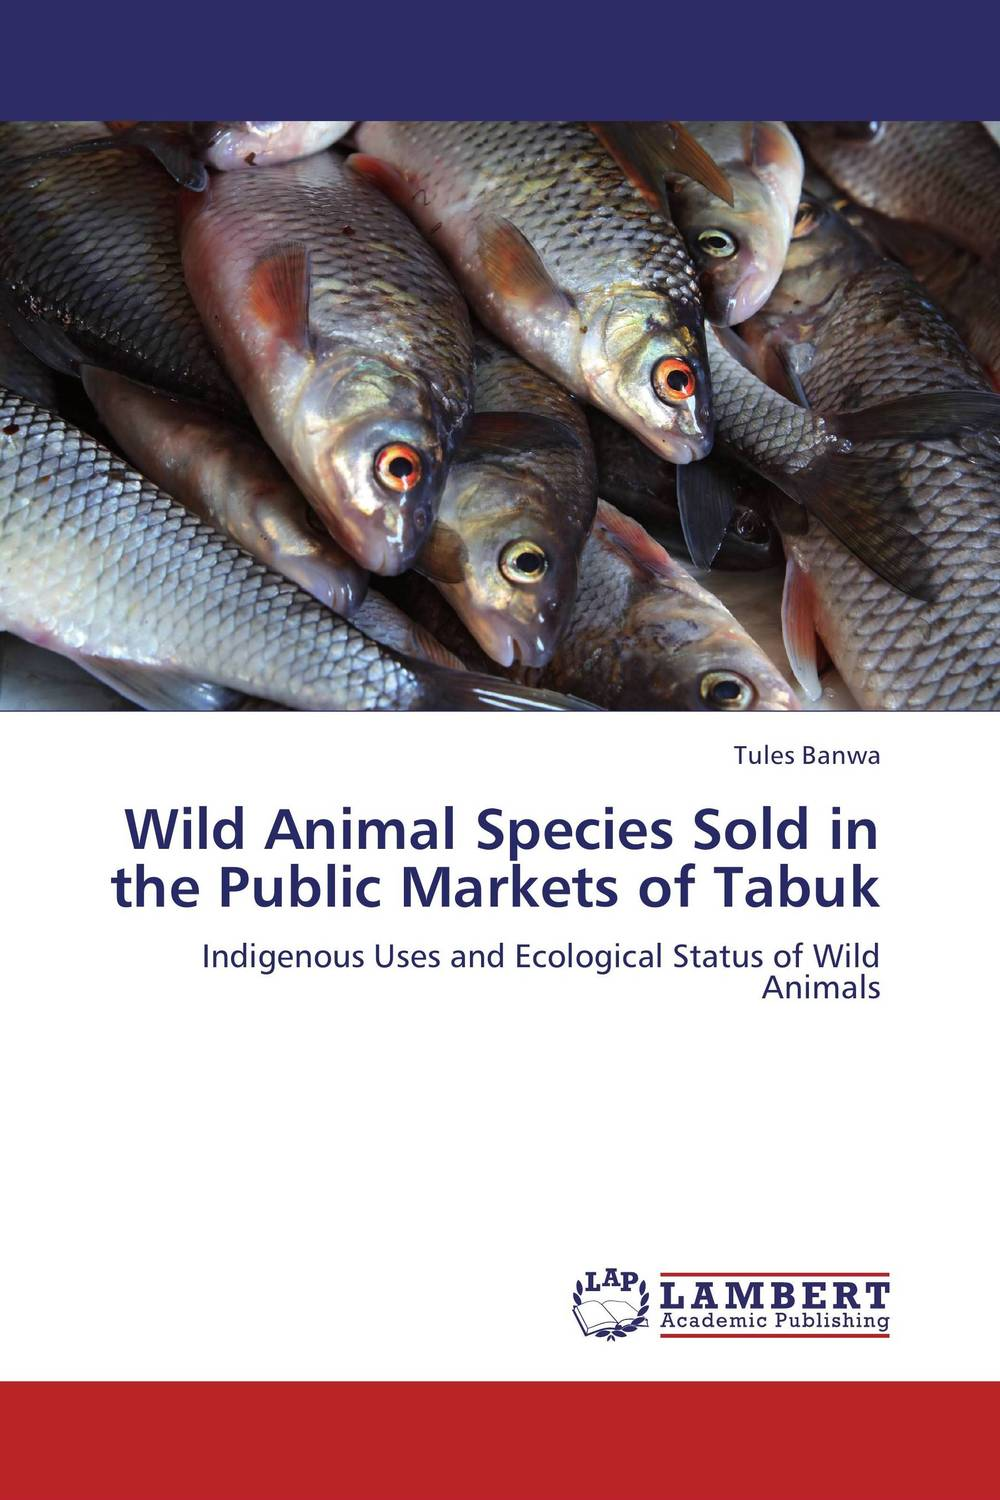 Wild Animal Species Sold in the Public Markets of Tabuk adsorbent of mycotoxins as feed additives in farm animals